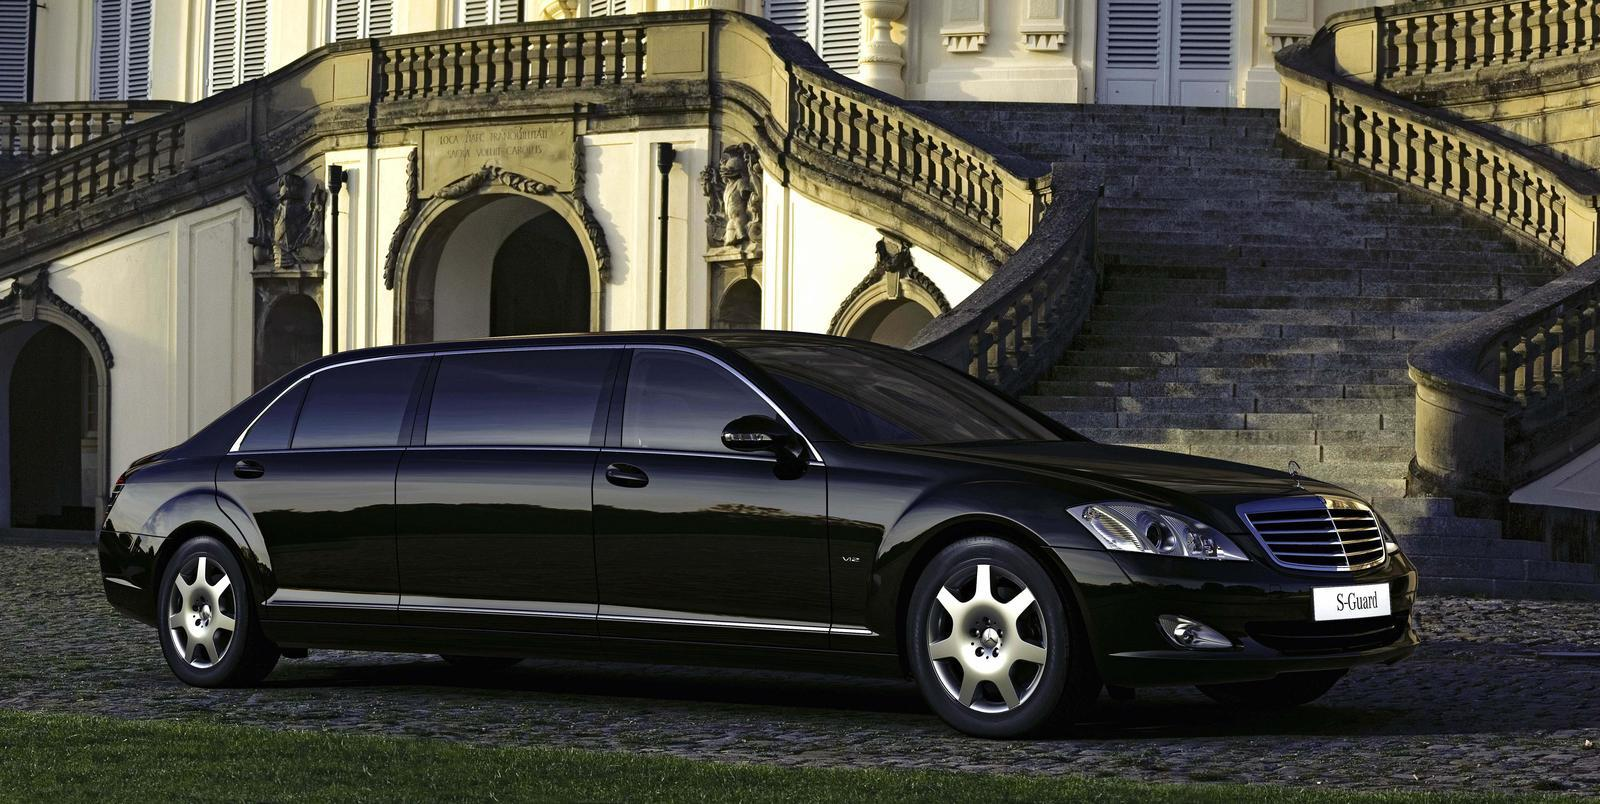 2008 mercedes benz s 600 guard pullman review top speed for Mercedes benz corporate office complaints